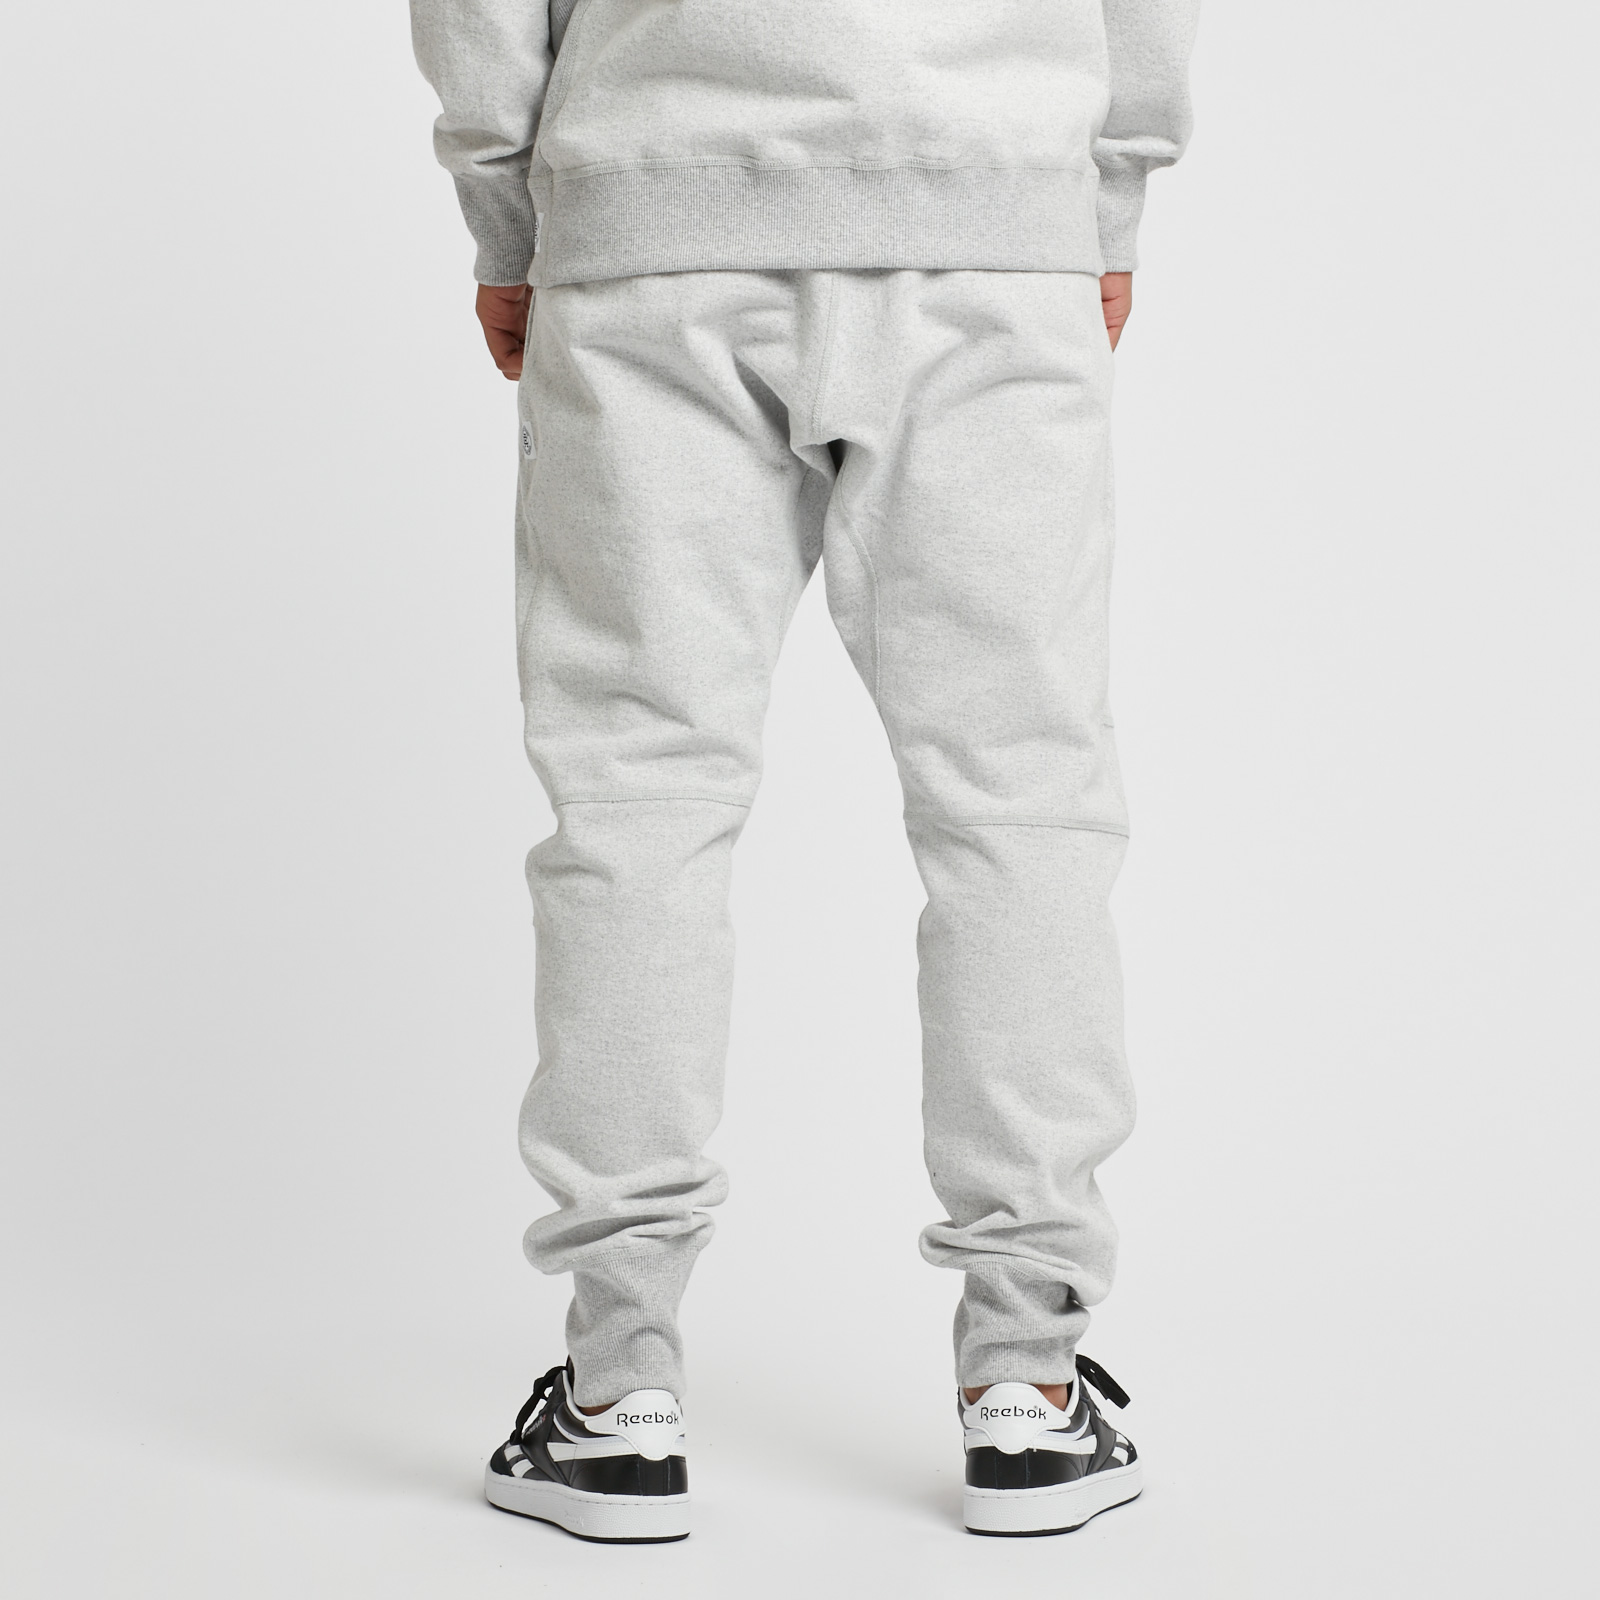 e60fa6b6ccc9 Reigning Champ Slim Sweatpant-Heavy Weight Terry - Rc-5108-chlk ...